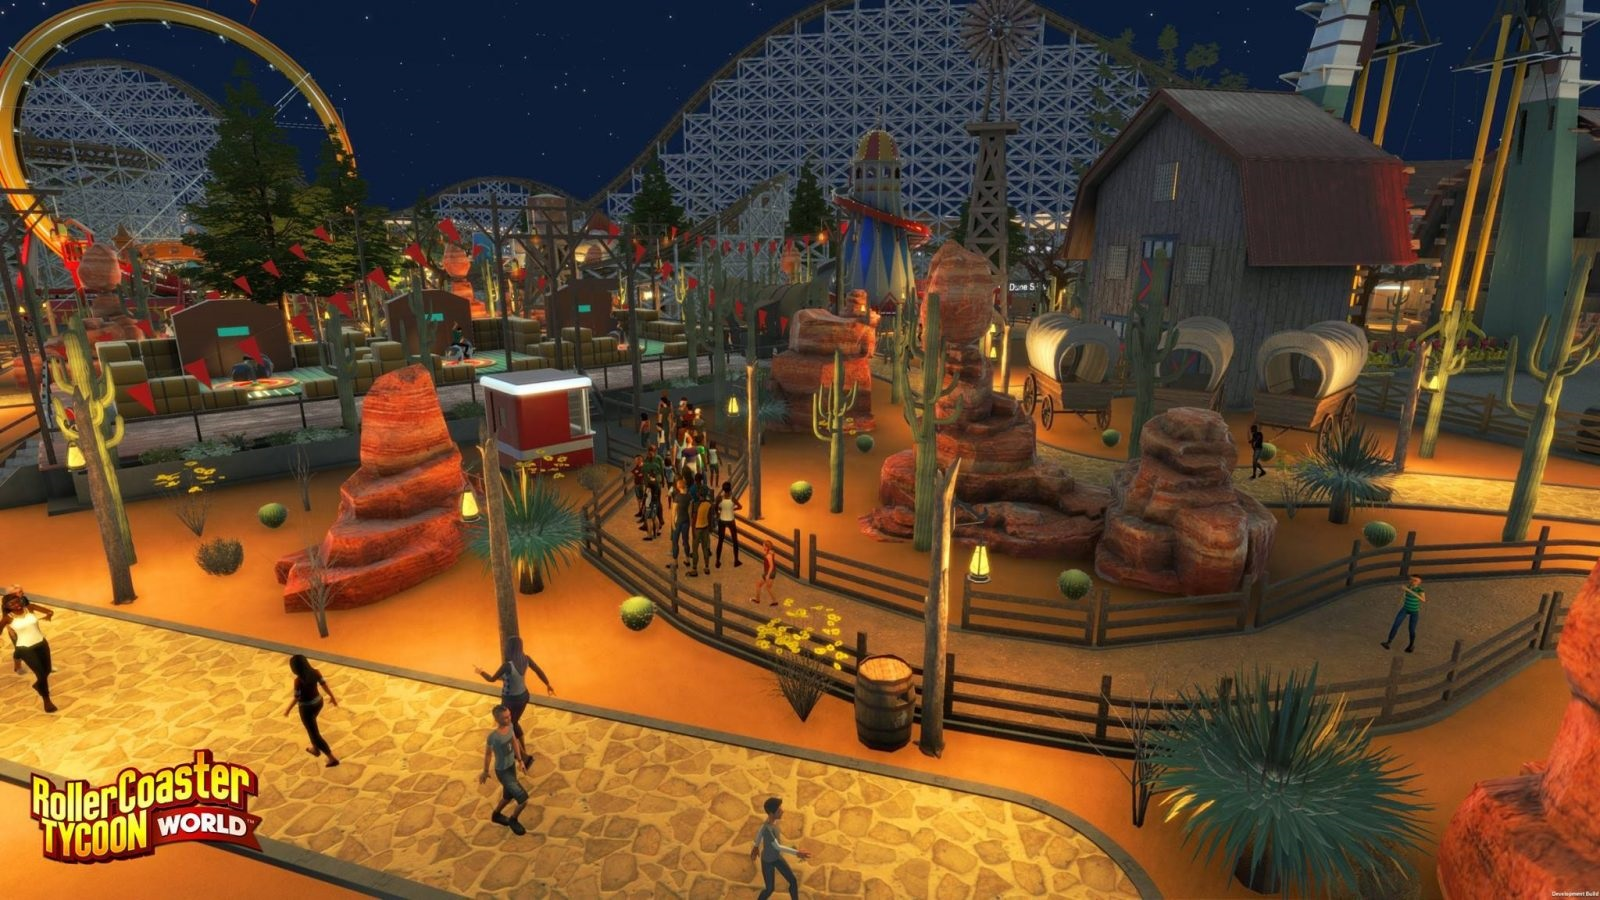 rollercoaster-tycoon-world-pc-screenshot-04